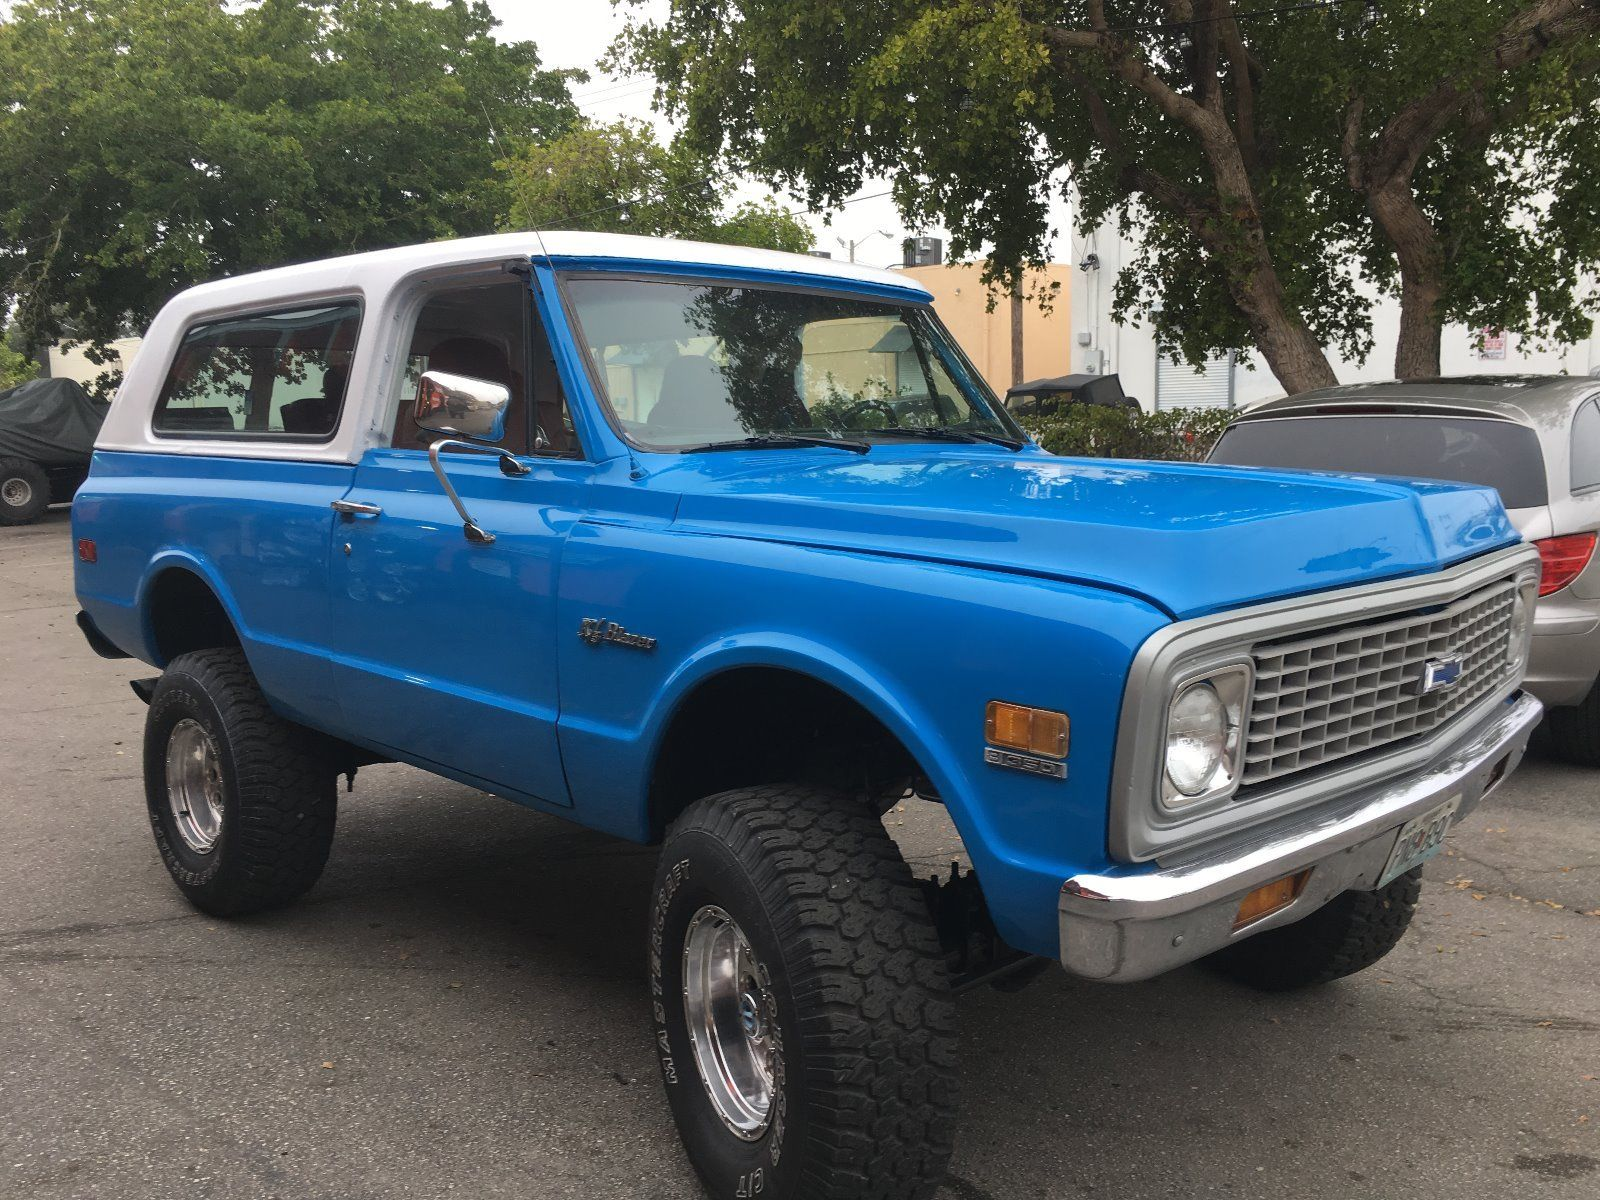 Fully Restored 1971 Chevrolet Blazer 4 4 Offroad For Sale